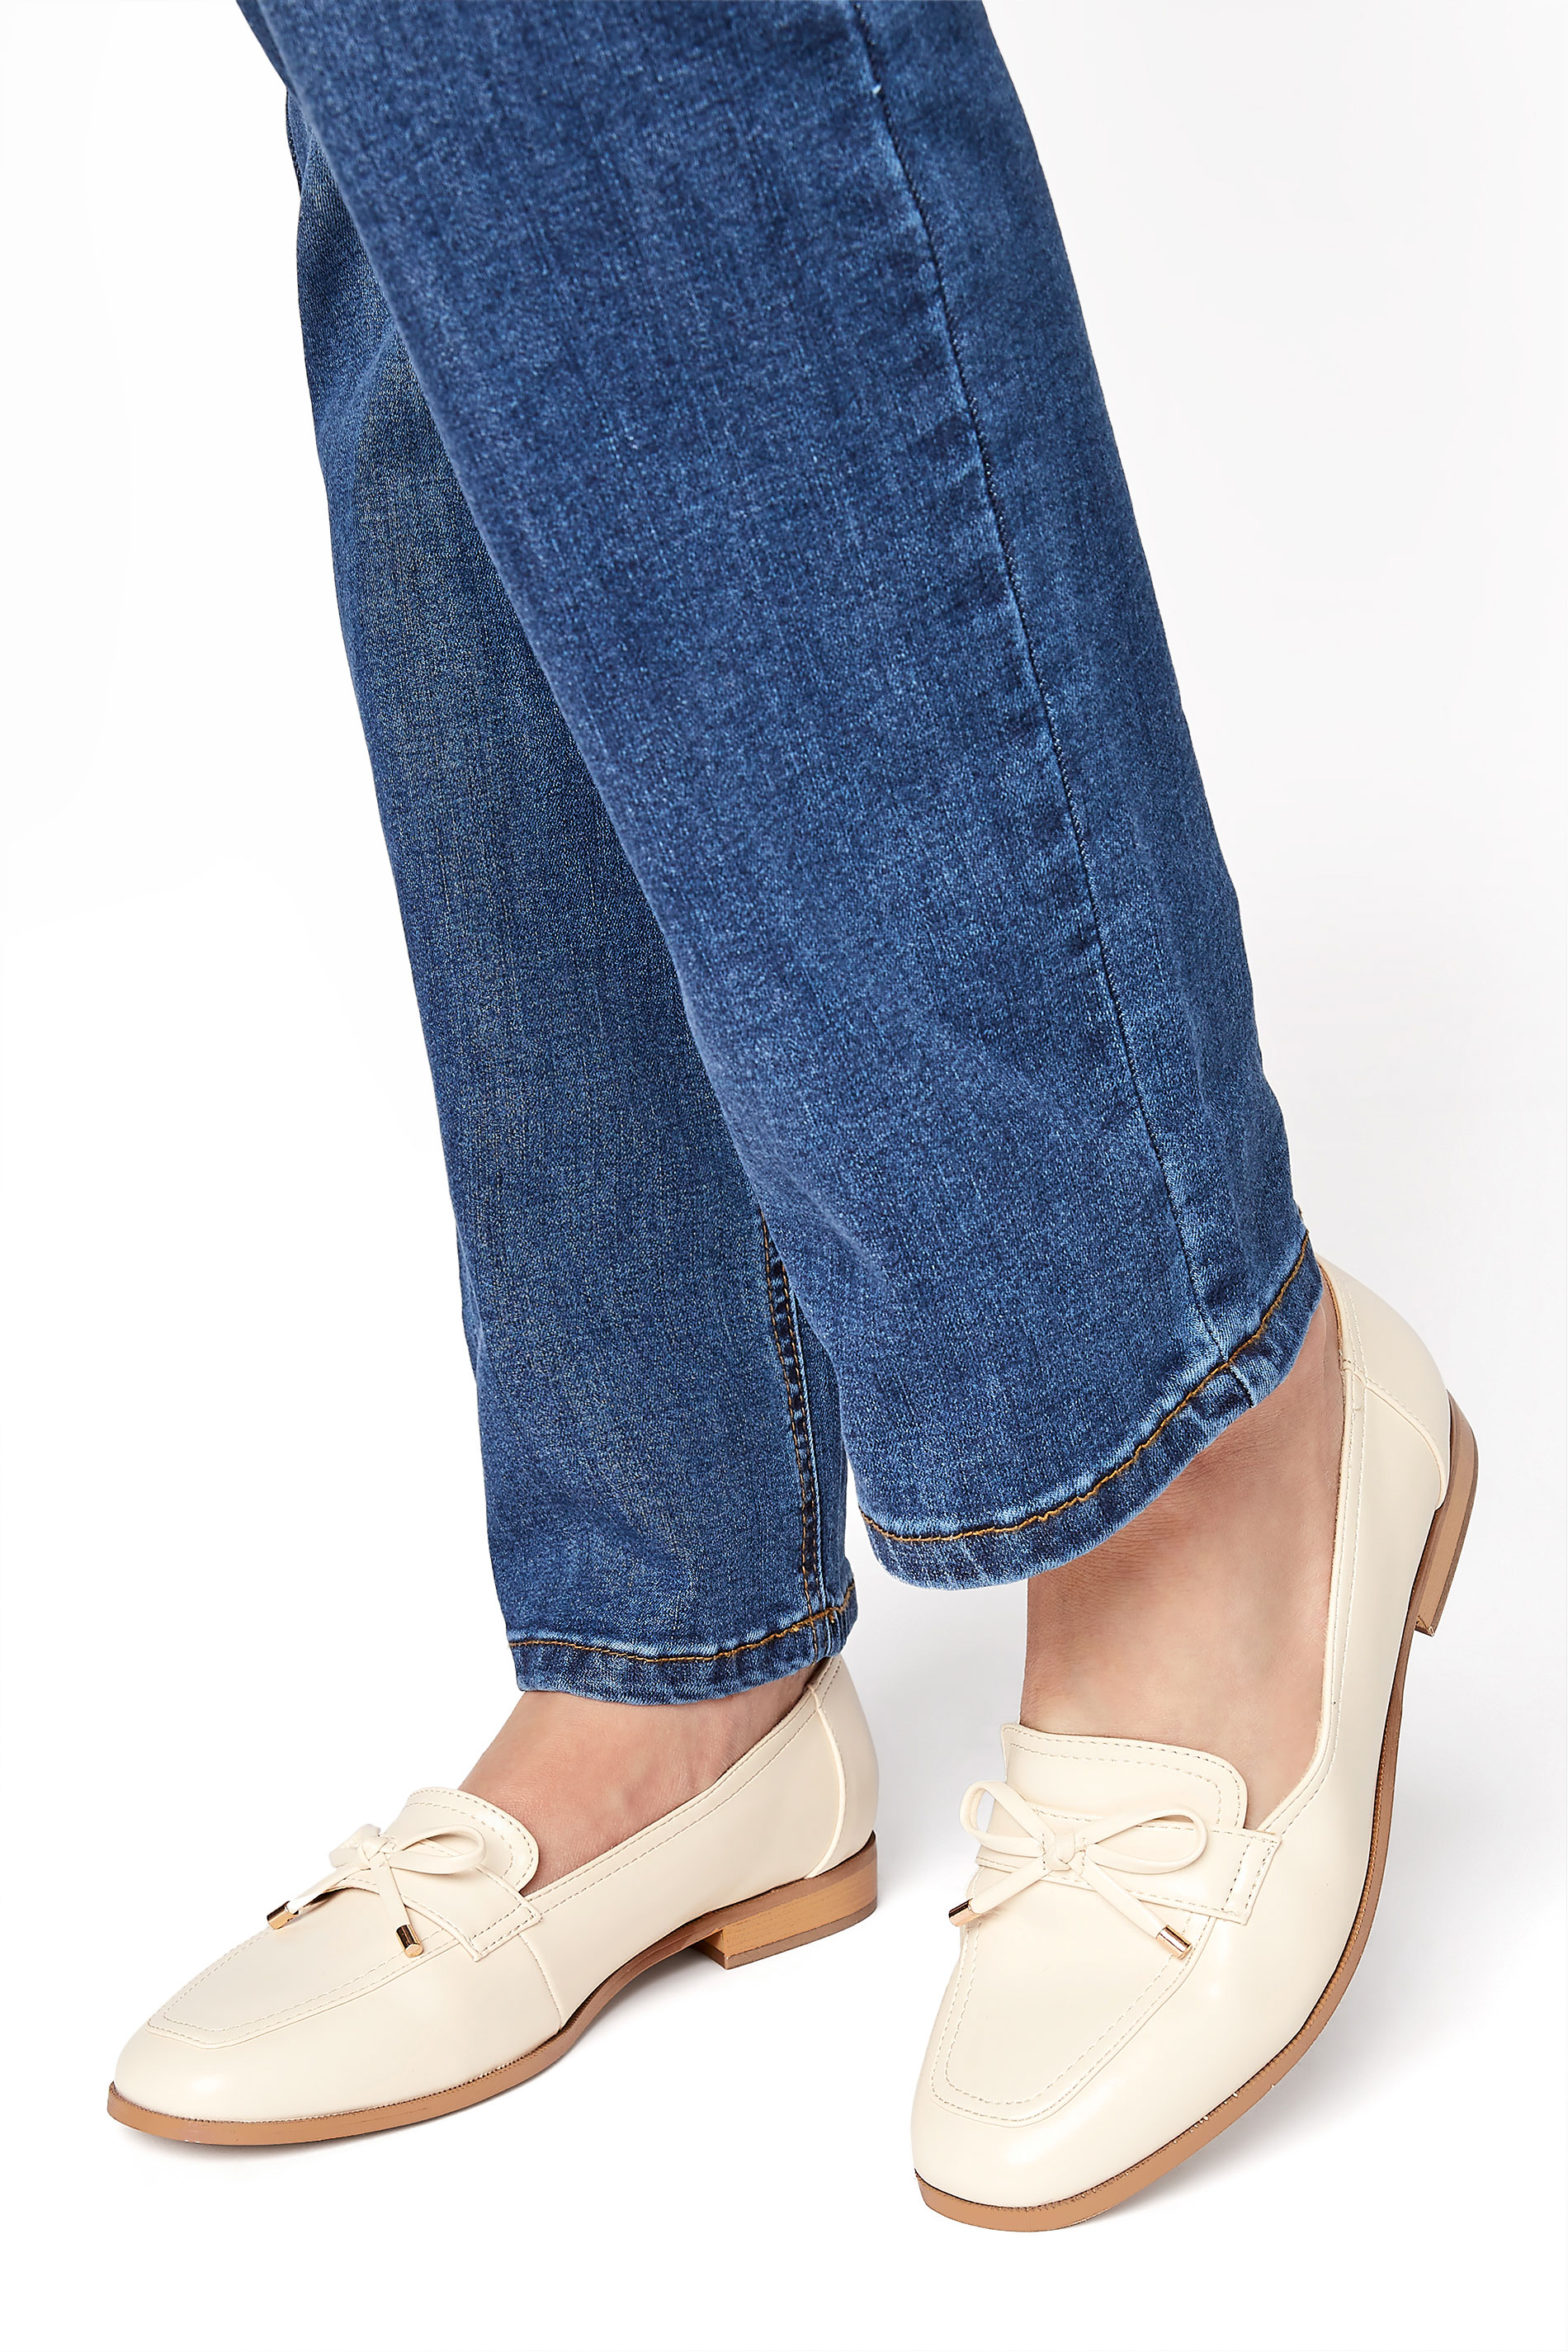 LTS White Bow Trim Loafer